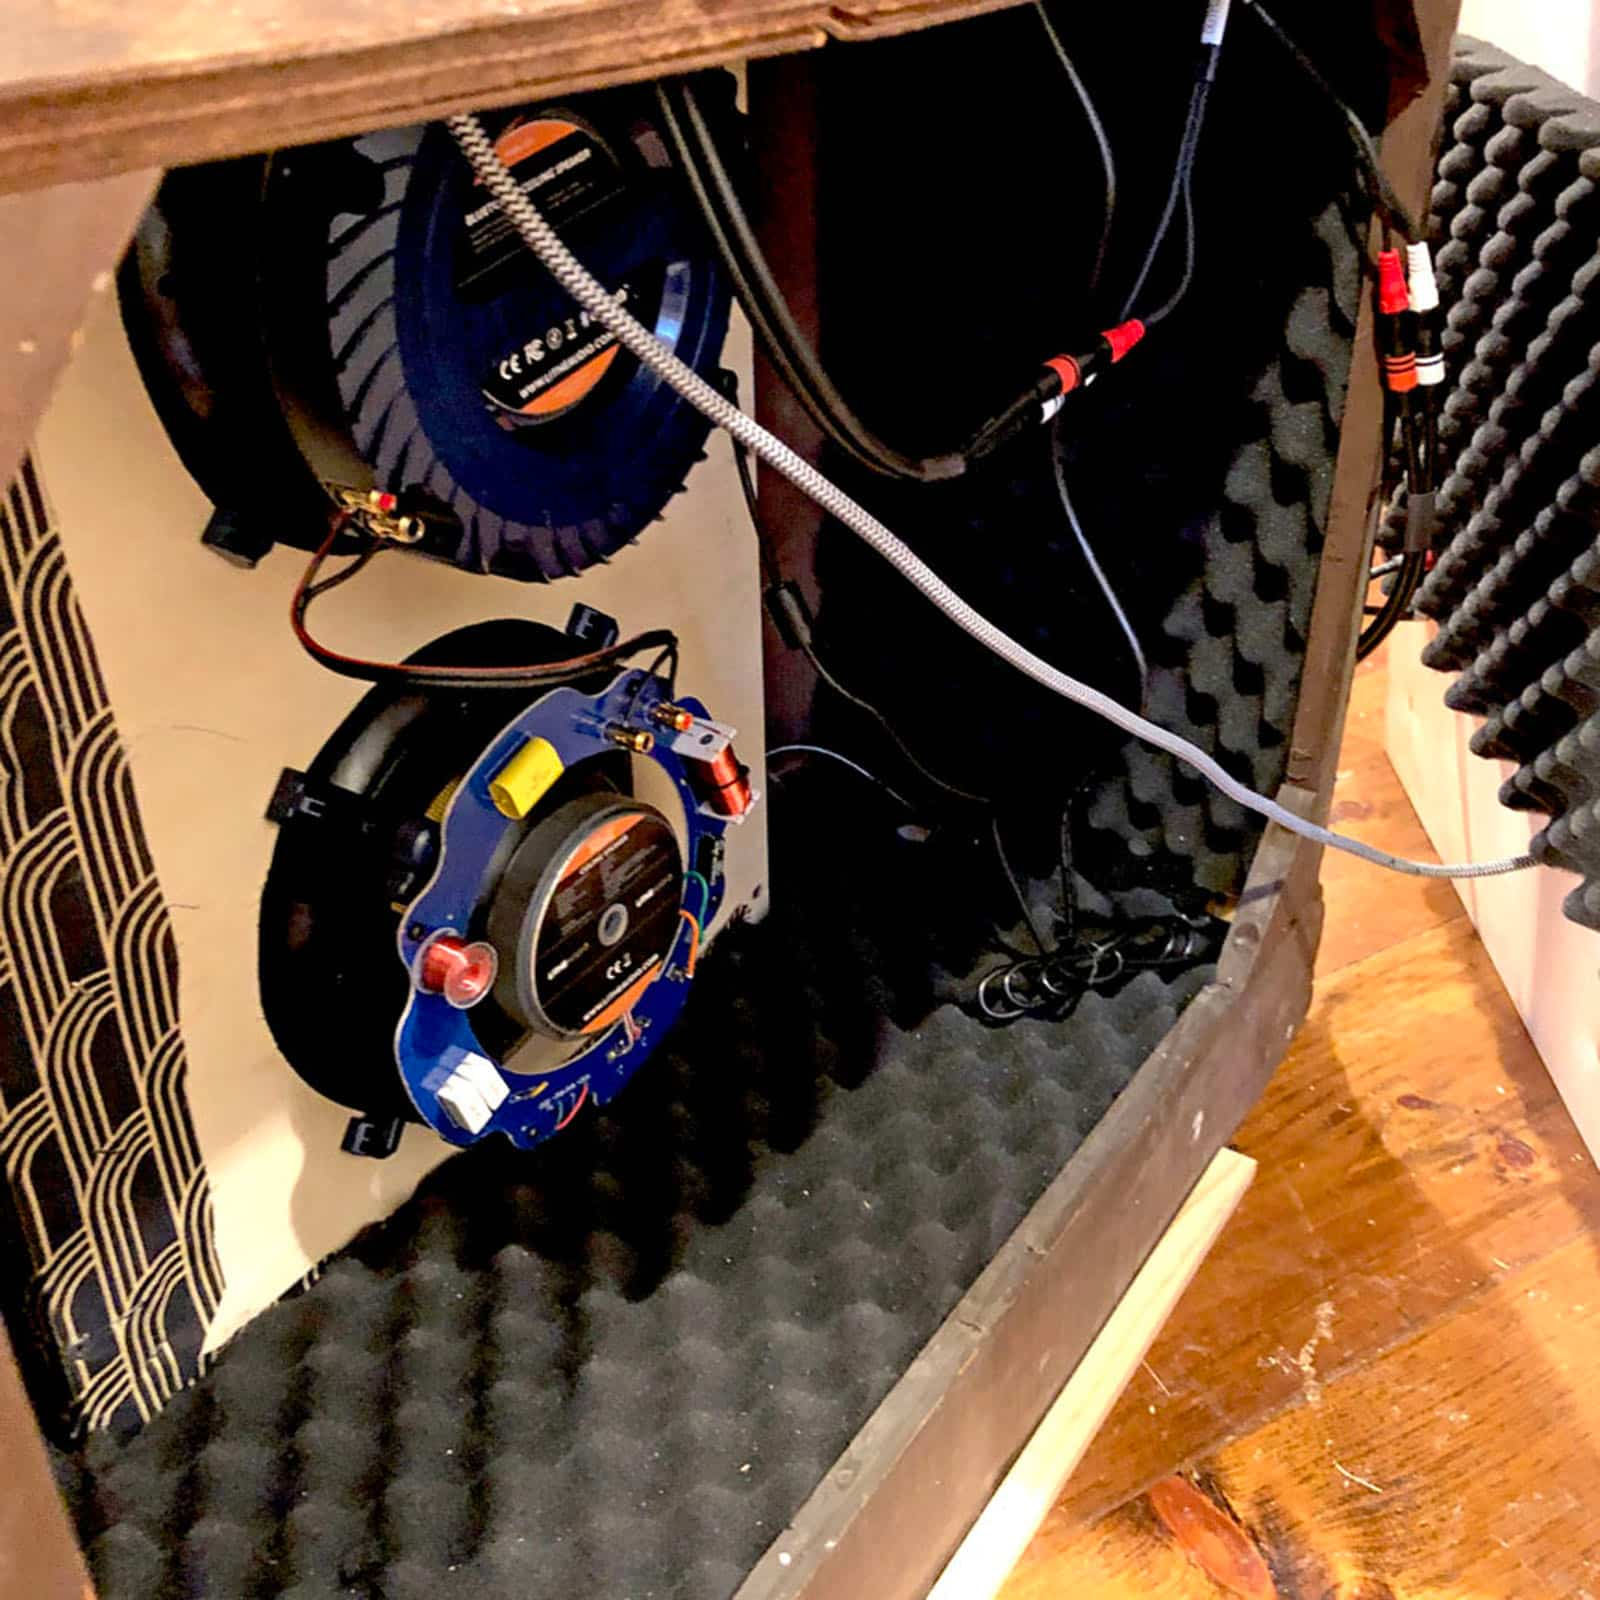 Inside view of Rosie's Workshop edition vintage floor radio with modern technology. We outfit the radio with a high-end Bluetooth or Wi-Fi audio system. We apply professional grade acoustic foam and baffles to create perfect sound in a sealed speaker box within the original cabinet.